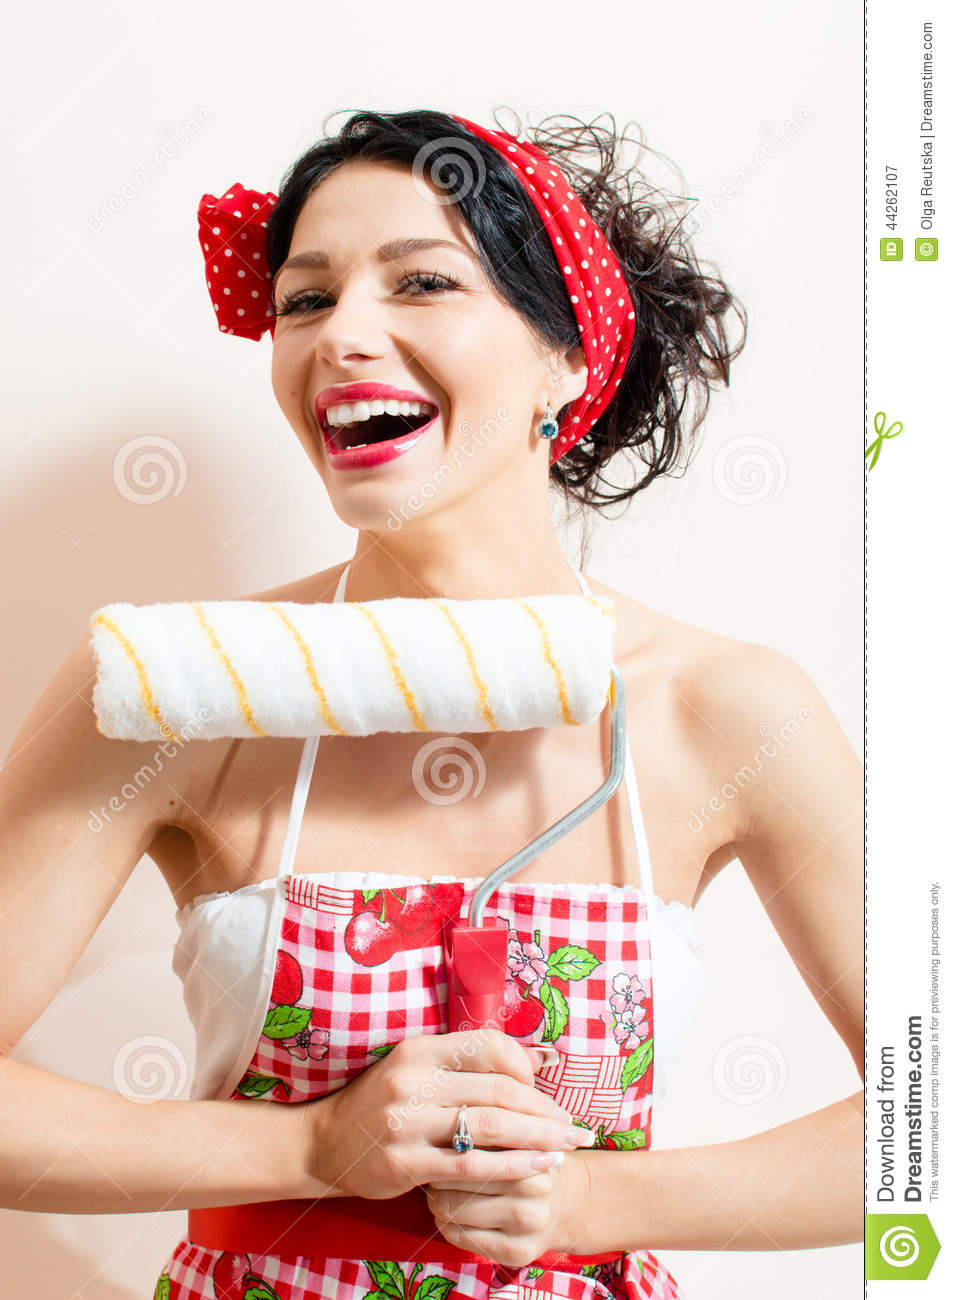 Closeup on funny brunette pinup pretty girl holding paint bolster, having good time & fun looking at camera and laughing